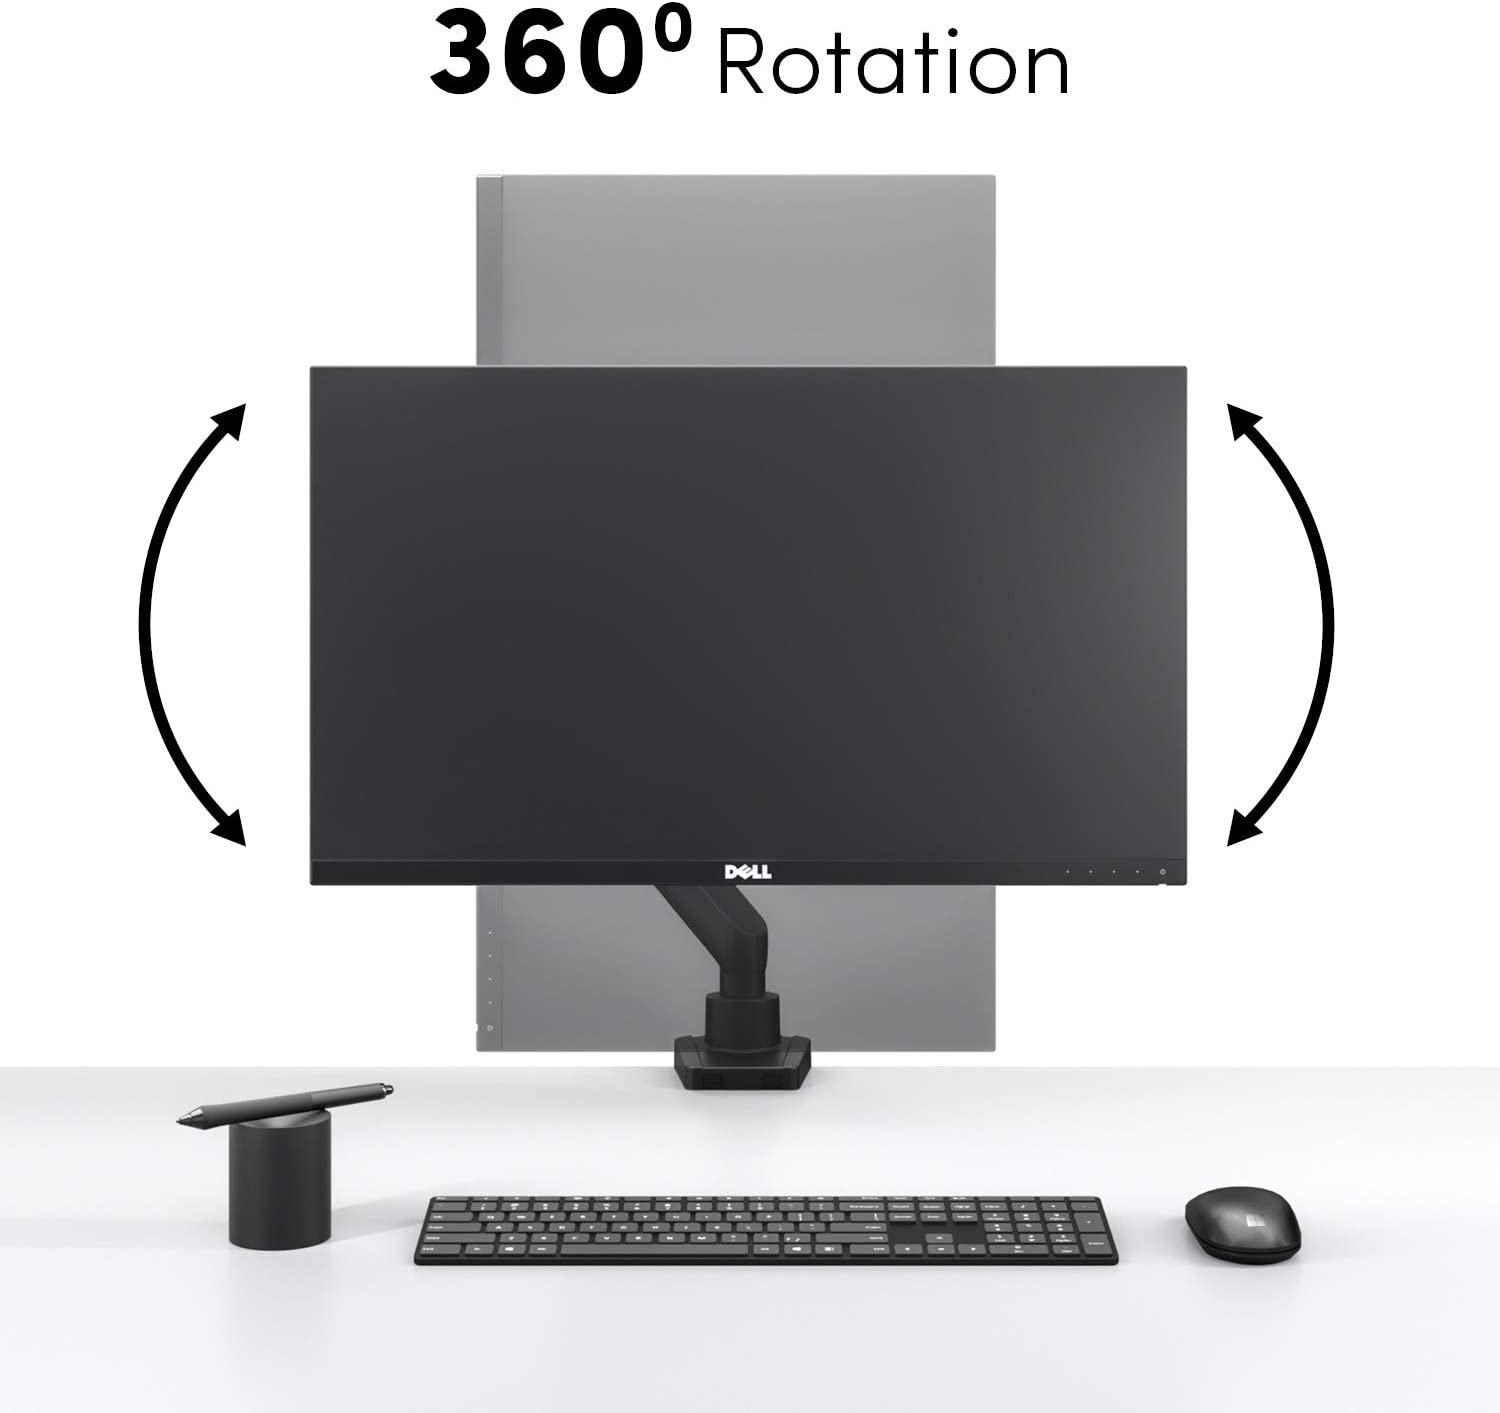 """EVEO Single Monitor Arm Desk Mount - Adjustable Desk Monitor Mount - Full Swivel Dual Monitor Mount for 17"""" to 32"""" Computer Monitor VESA Compatible Screens (2 to 7Kg) (4.4-15.4lbs)"""